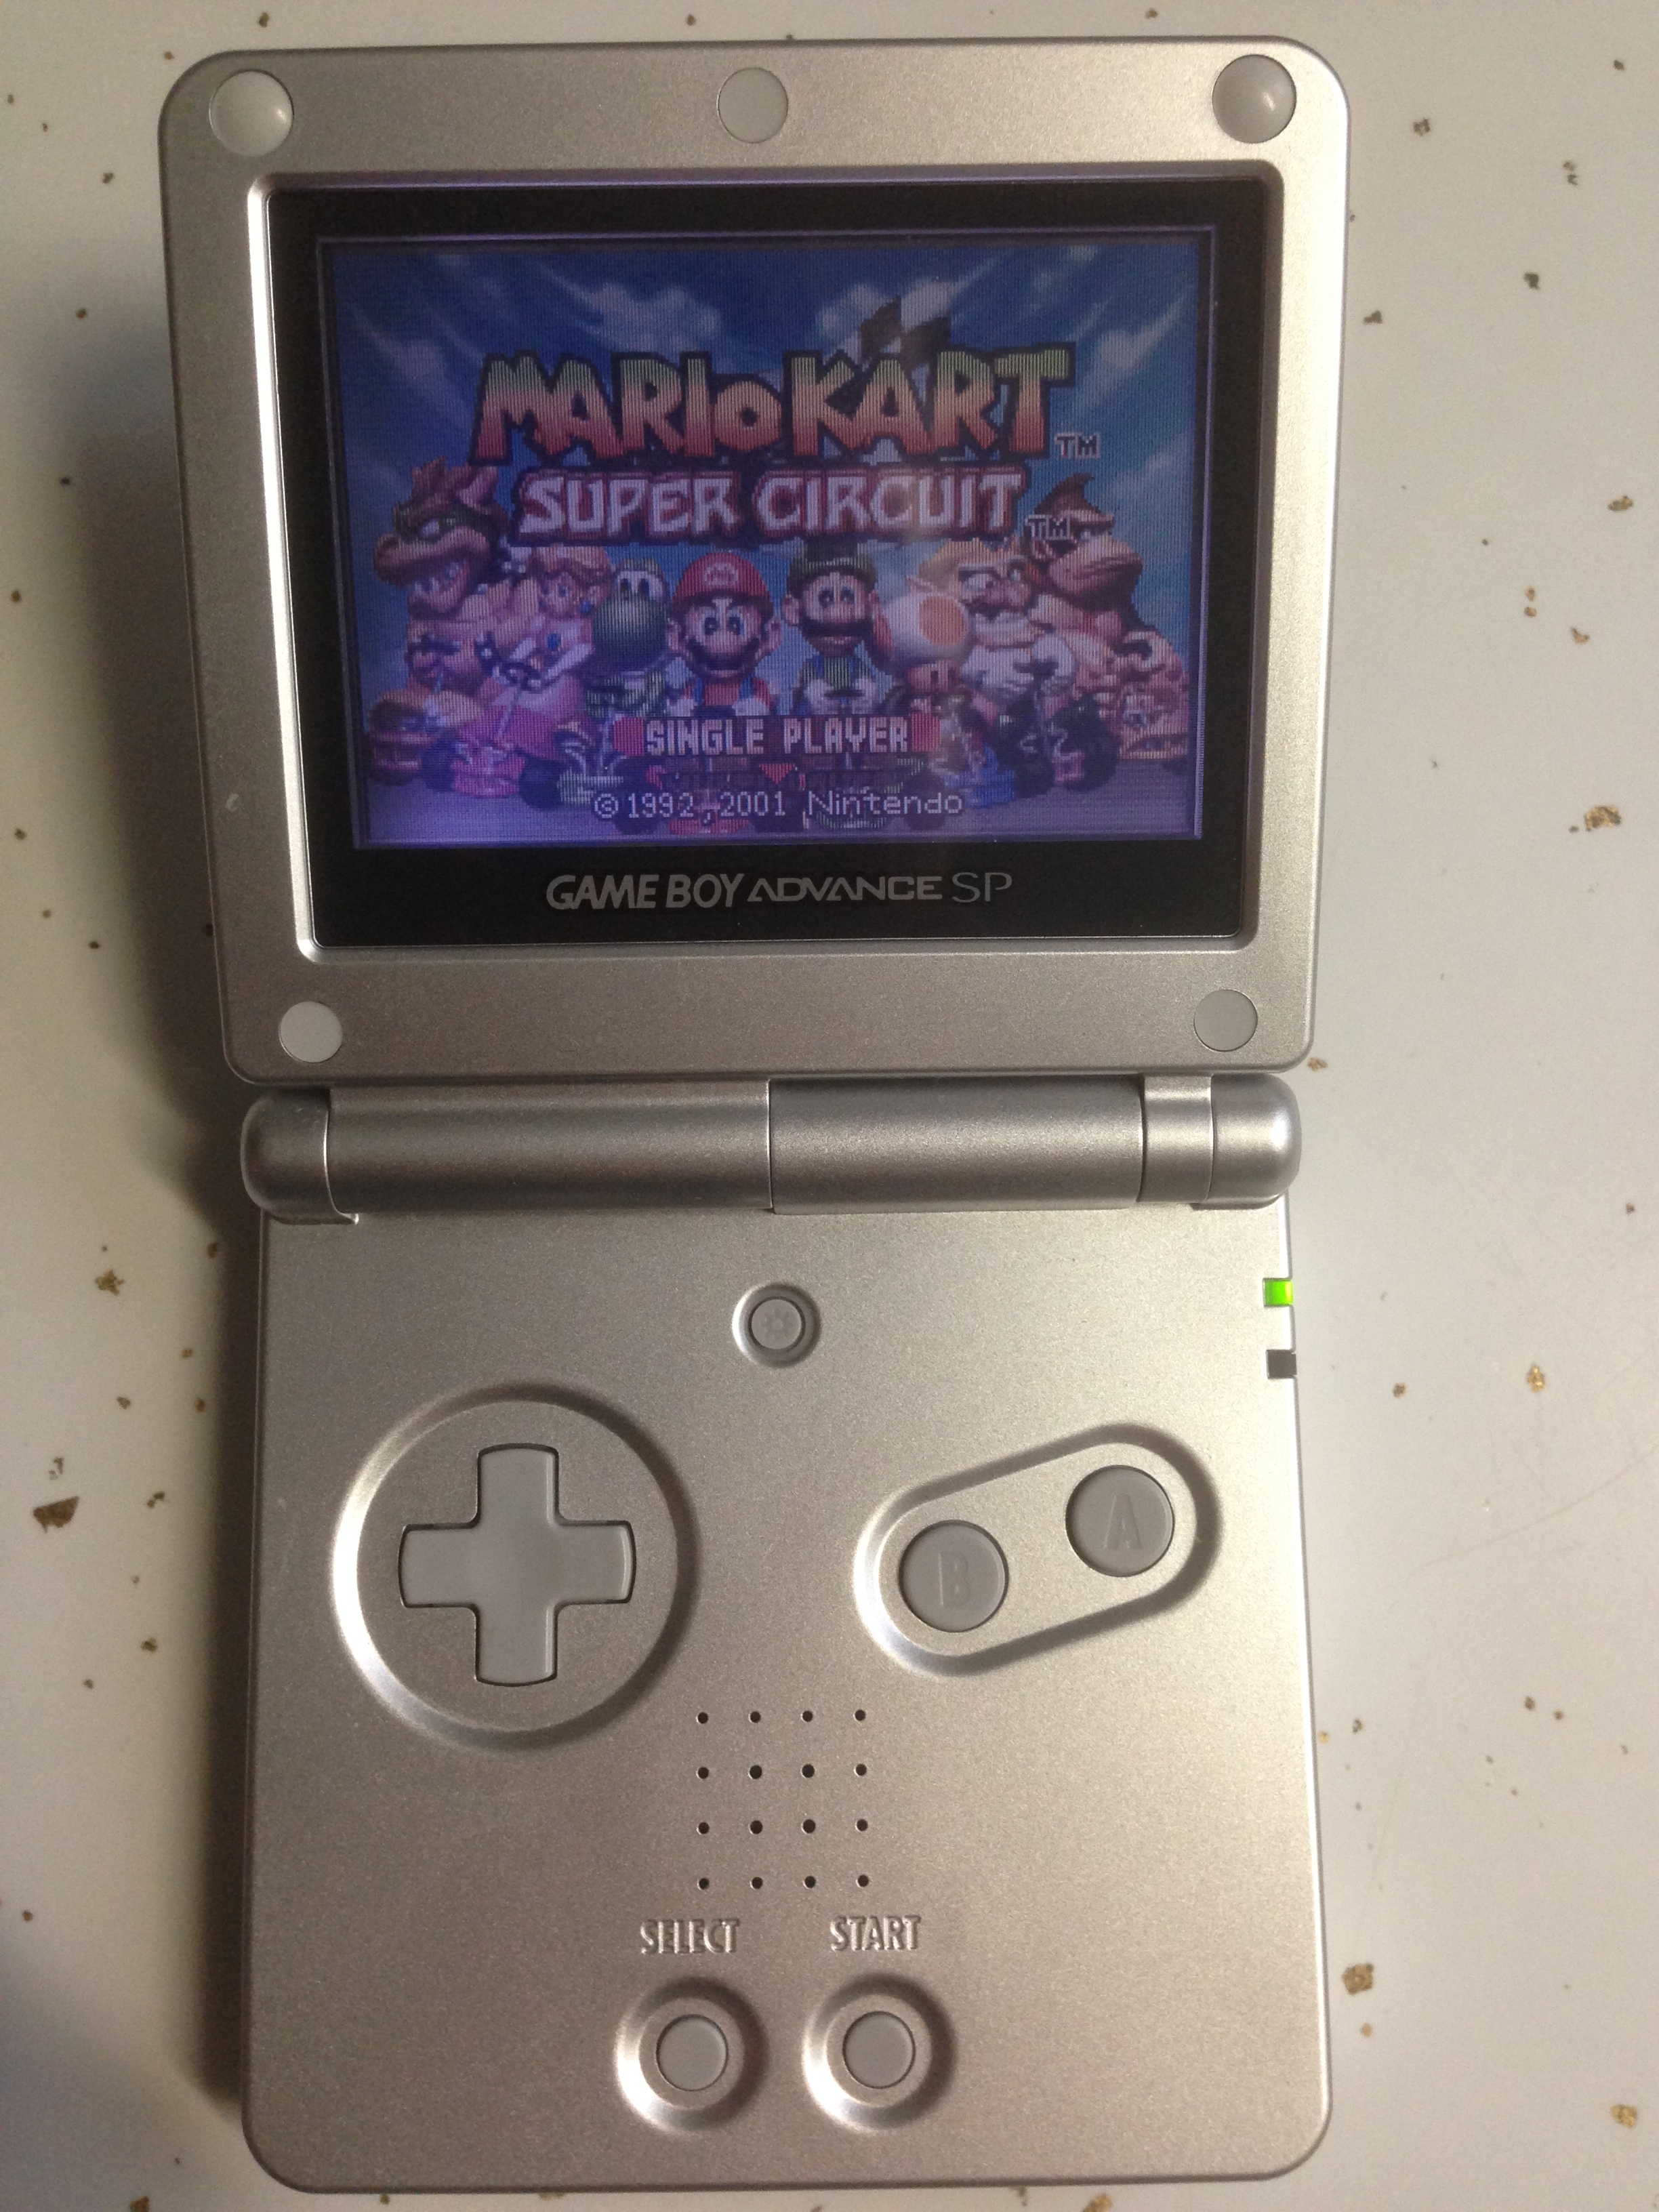 mksc_title_screen_w_gba